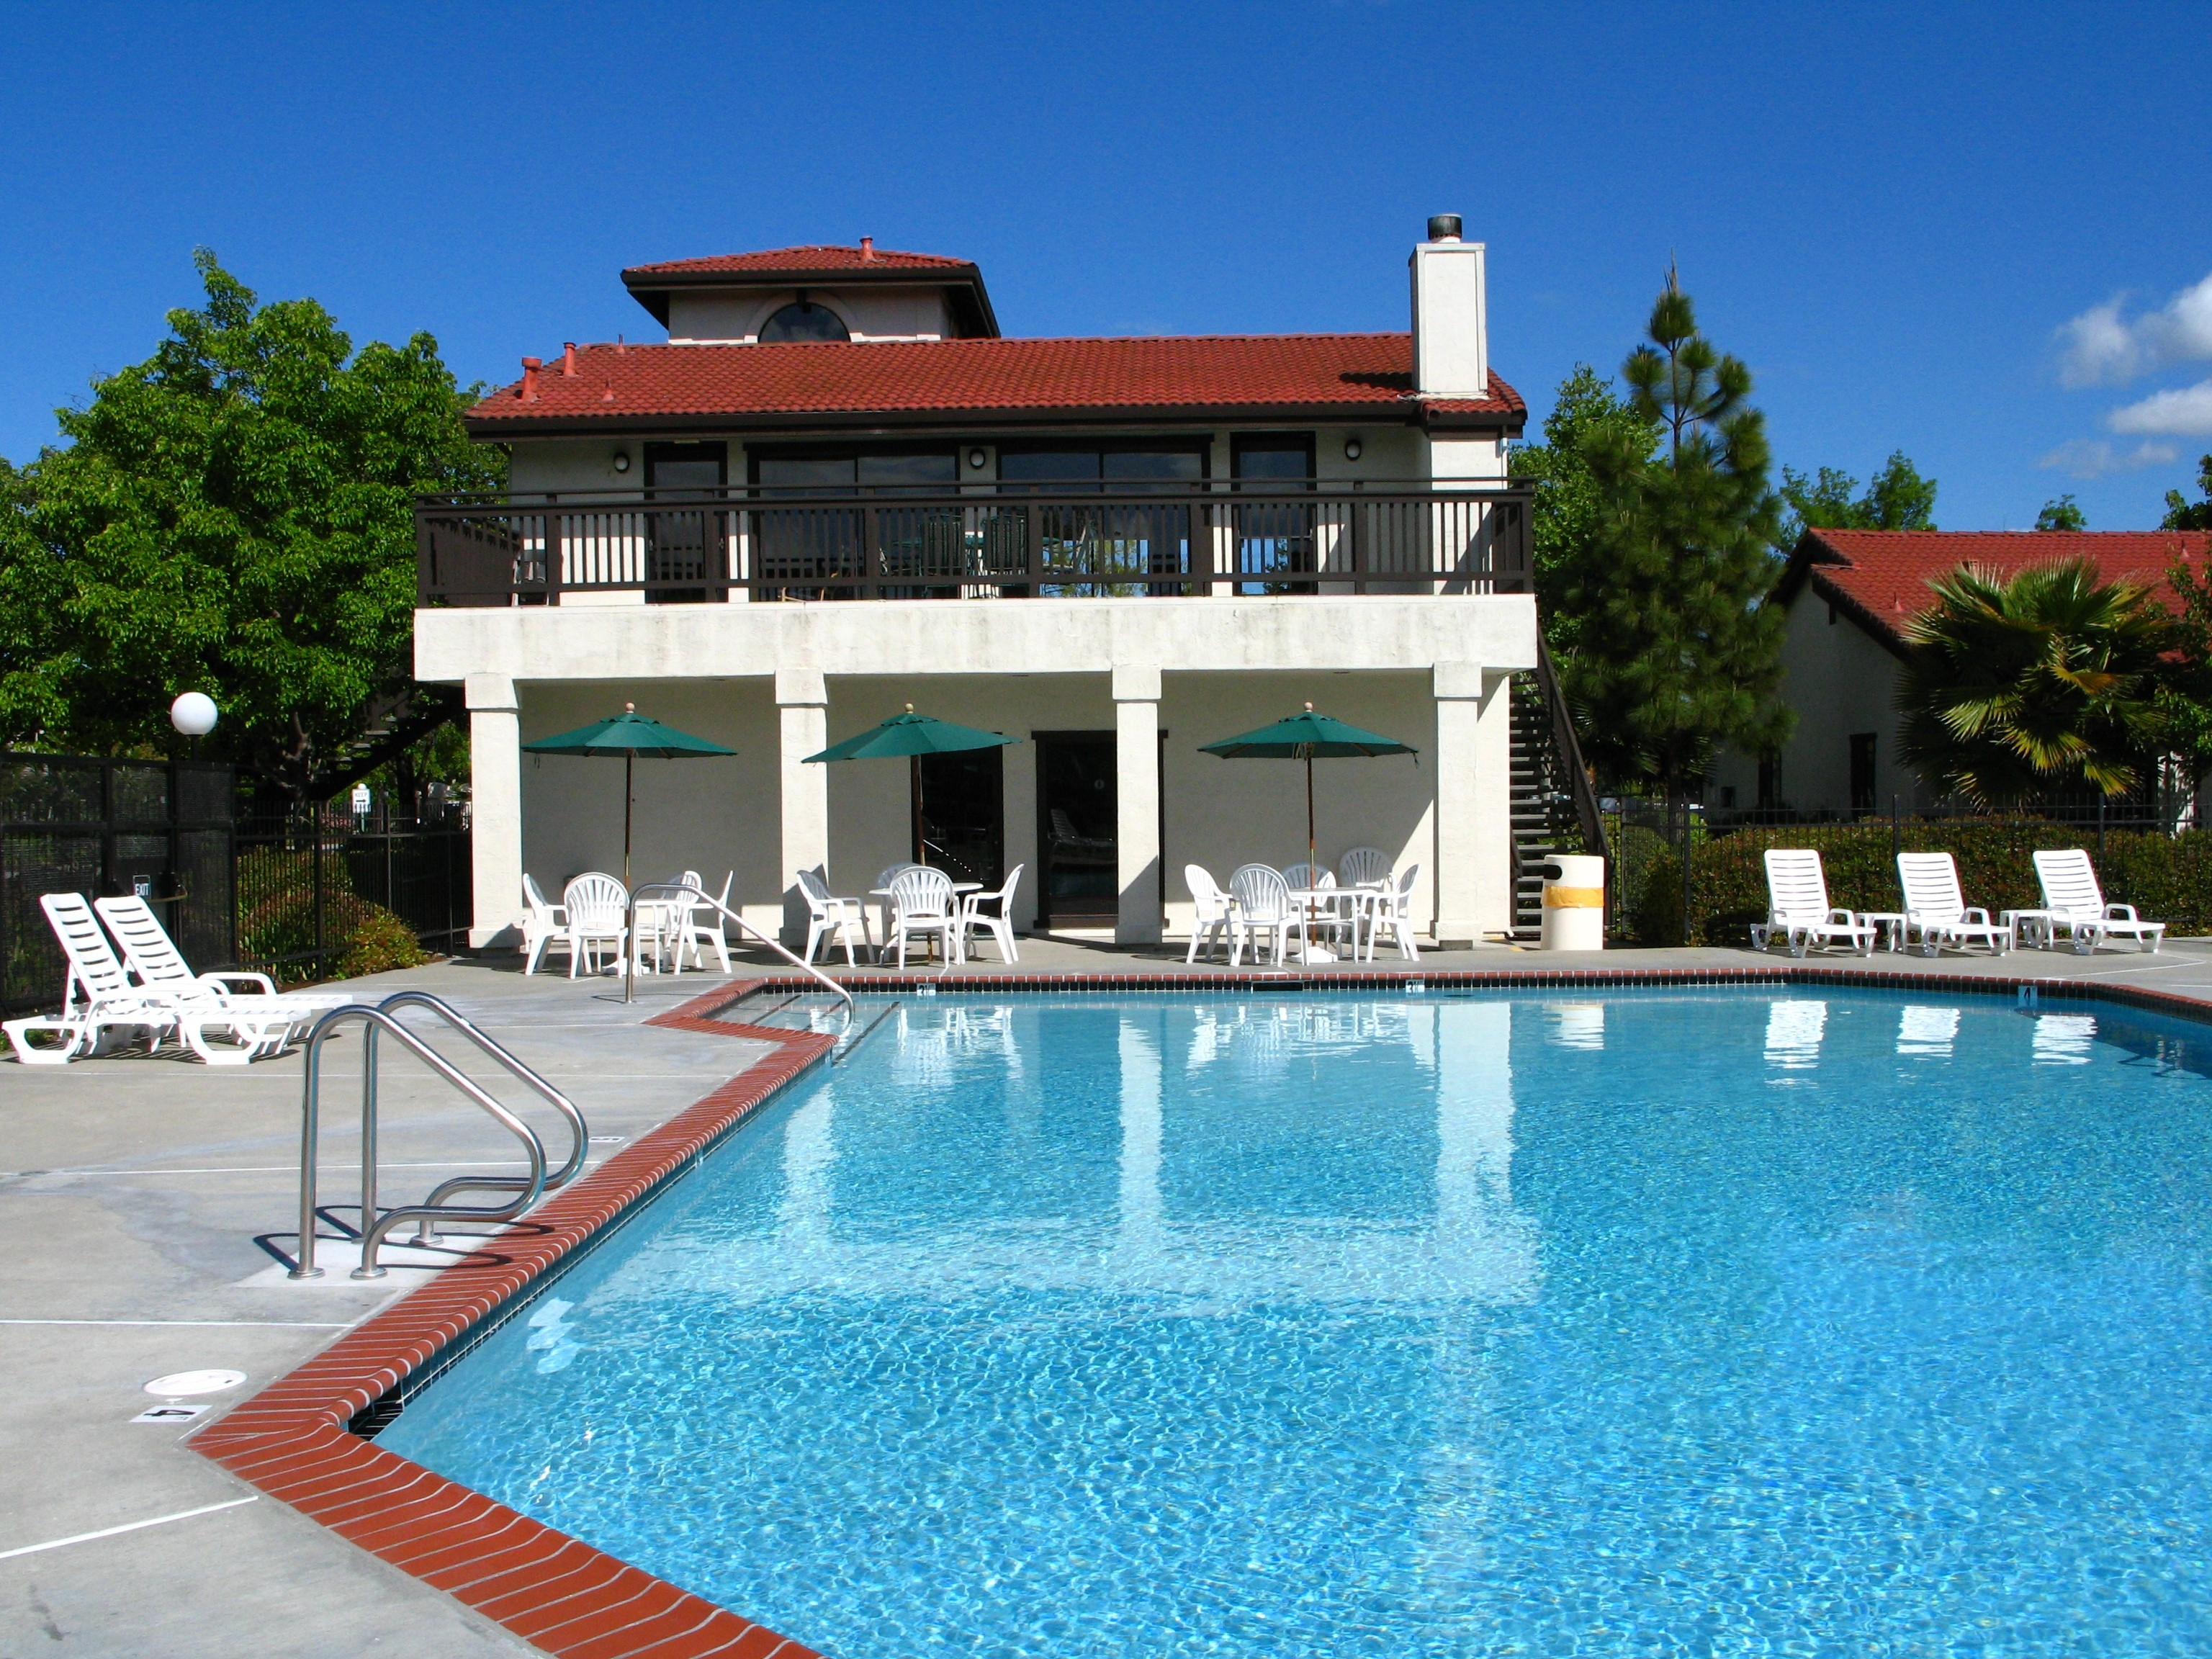 Apartments Near Cal State East Bay Ardenwood Forest Rental Condos for California State University-East Bay Students in Hayward, CA